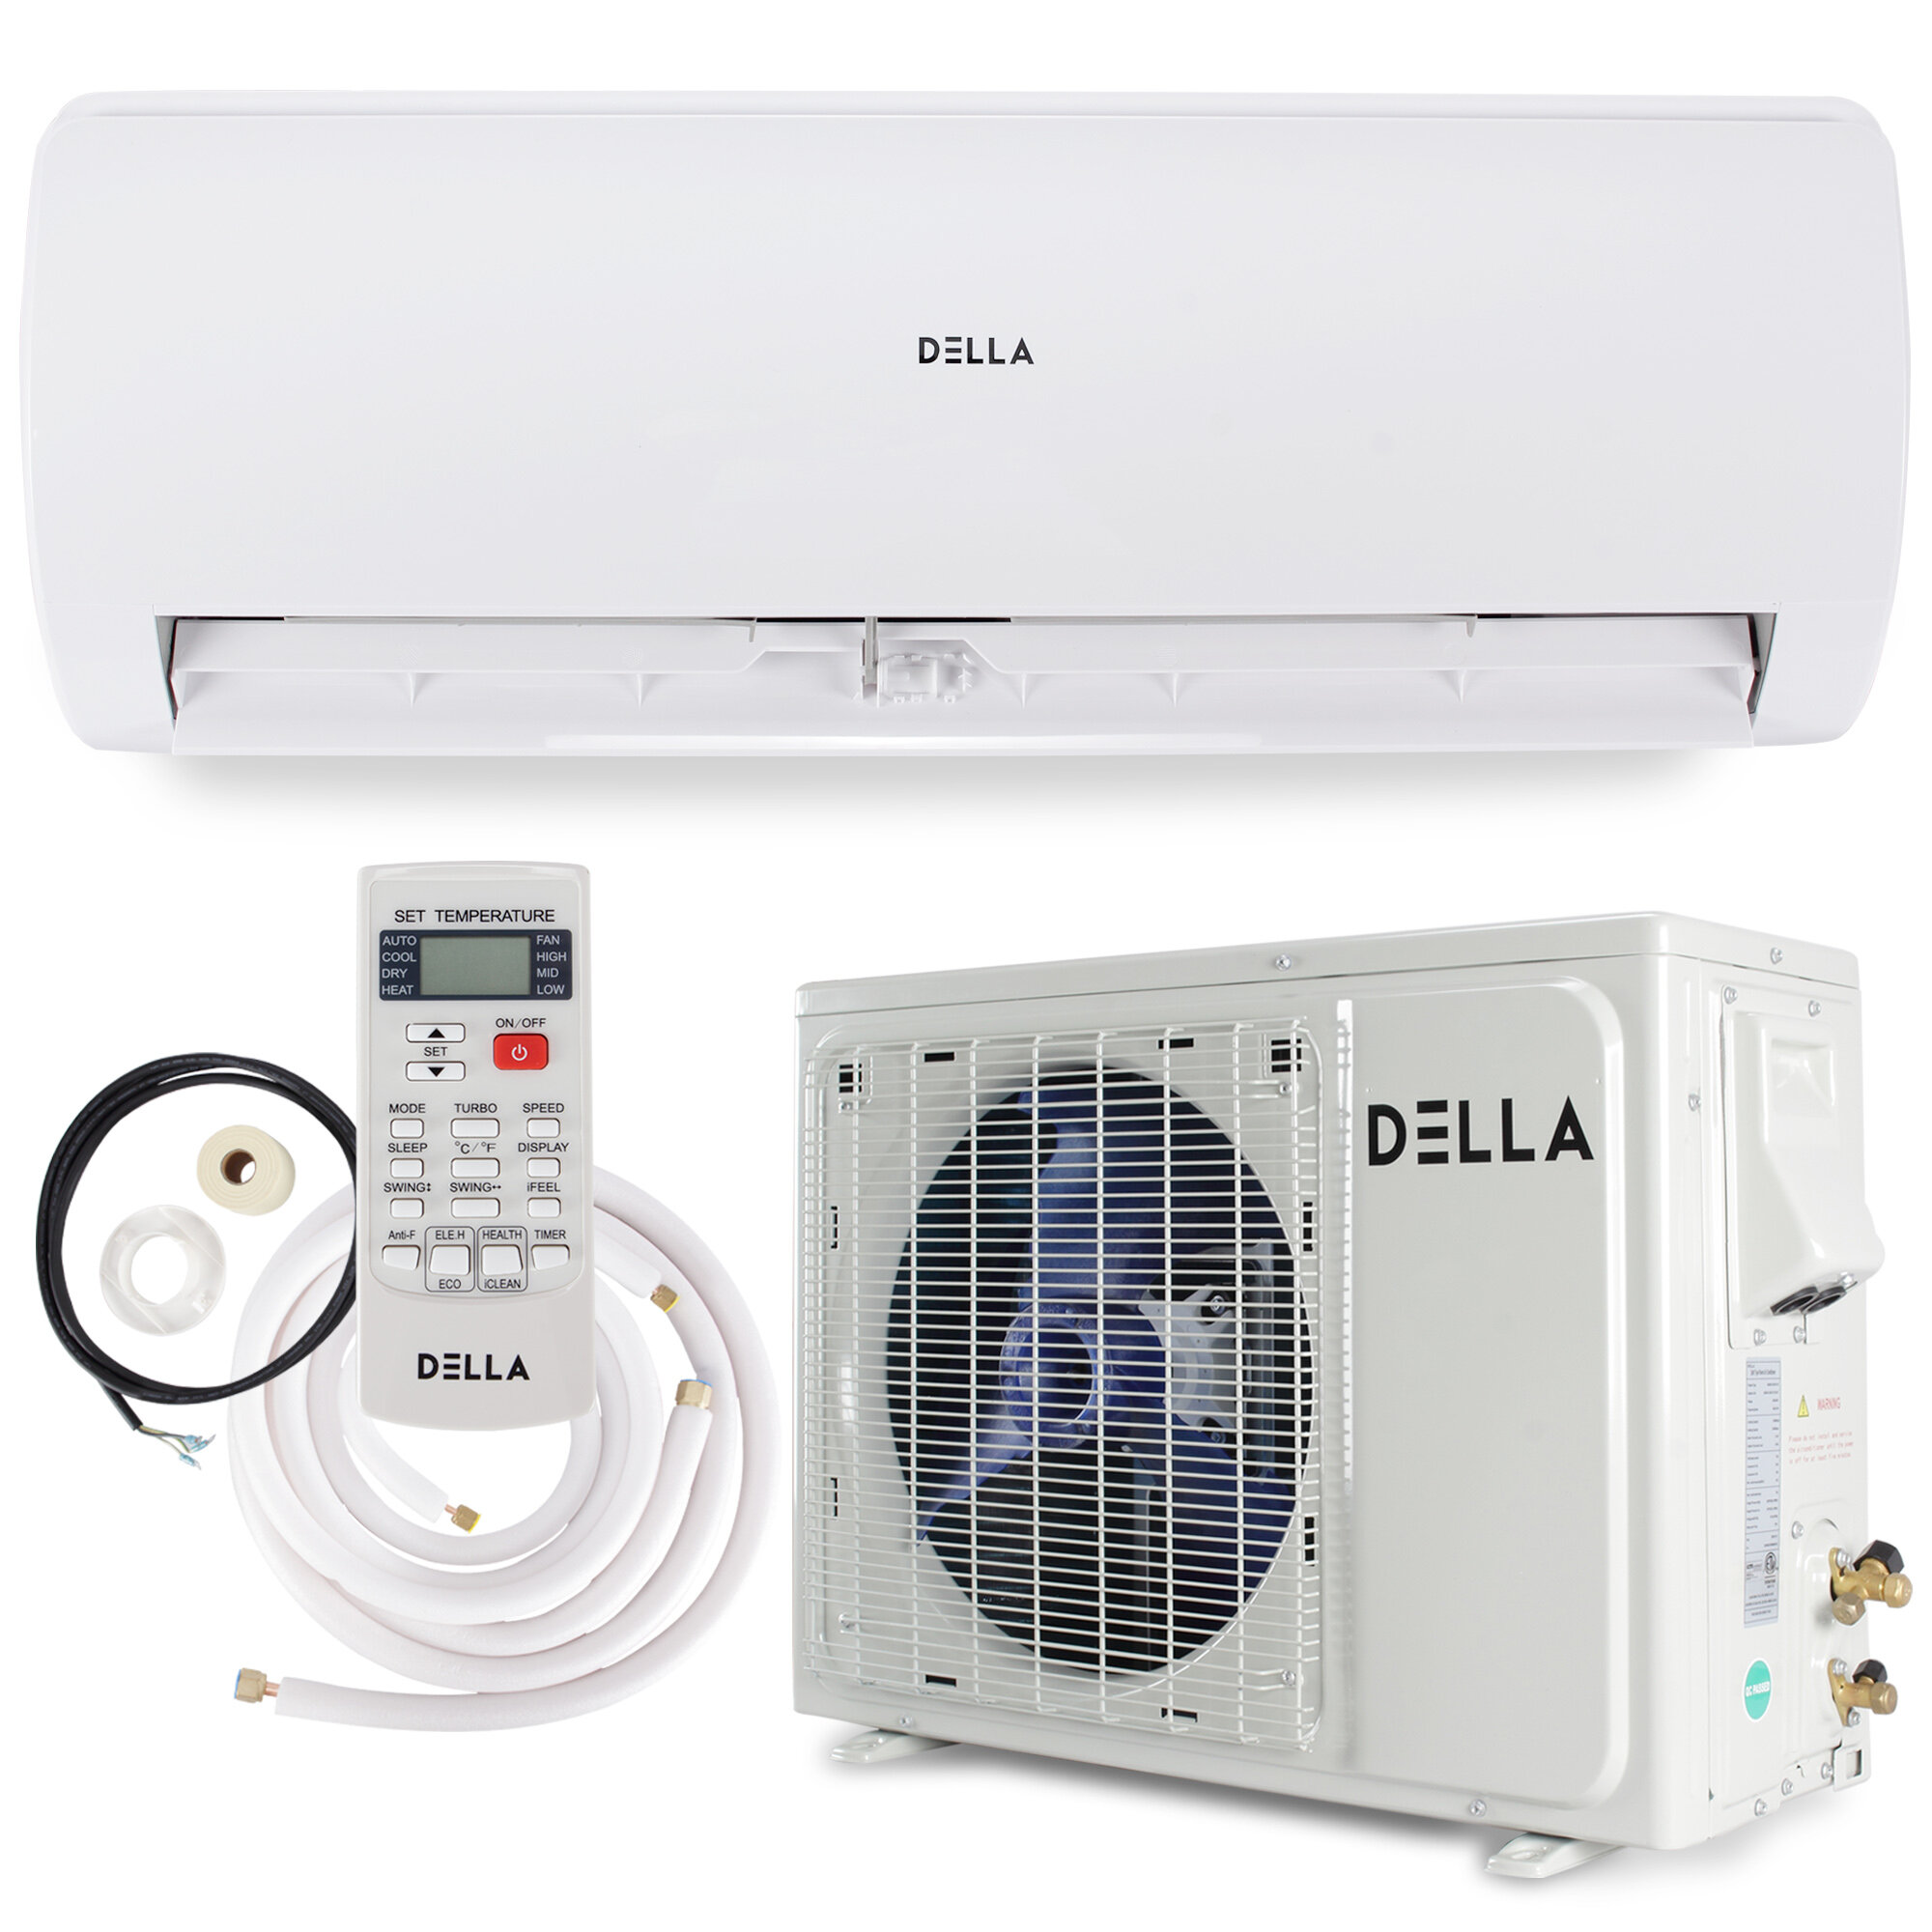 Della 17 Seer Inverter System 18 000 Btu Ductless Mini Split Air Conditioner With Heater And Remote Reviews Wayfair